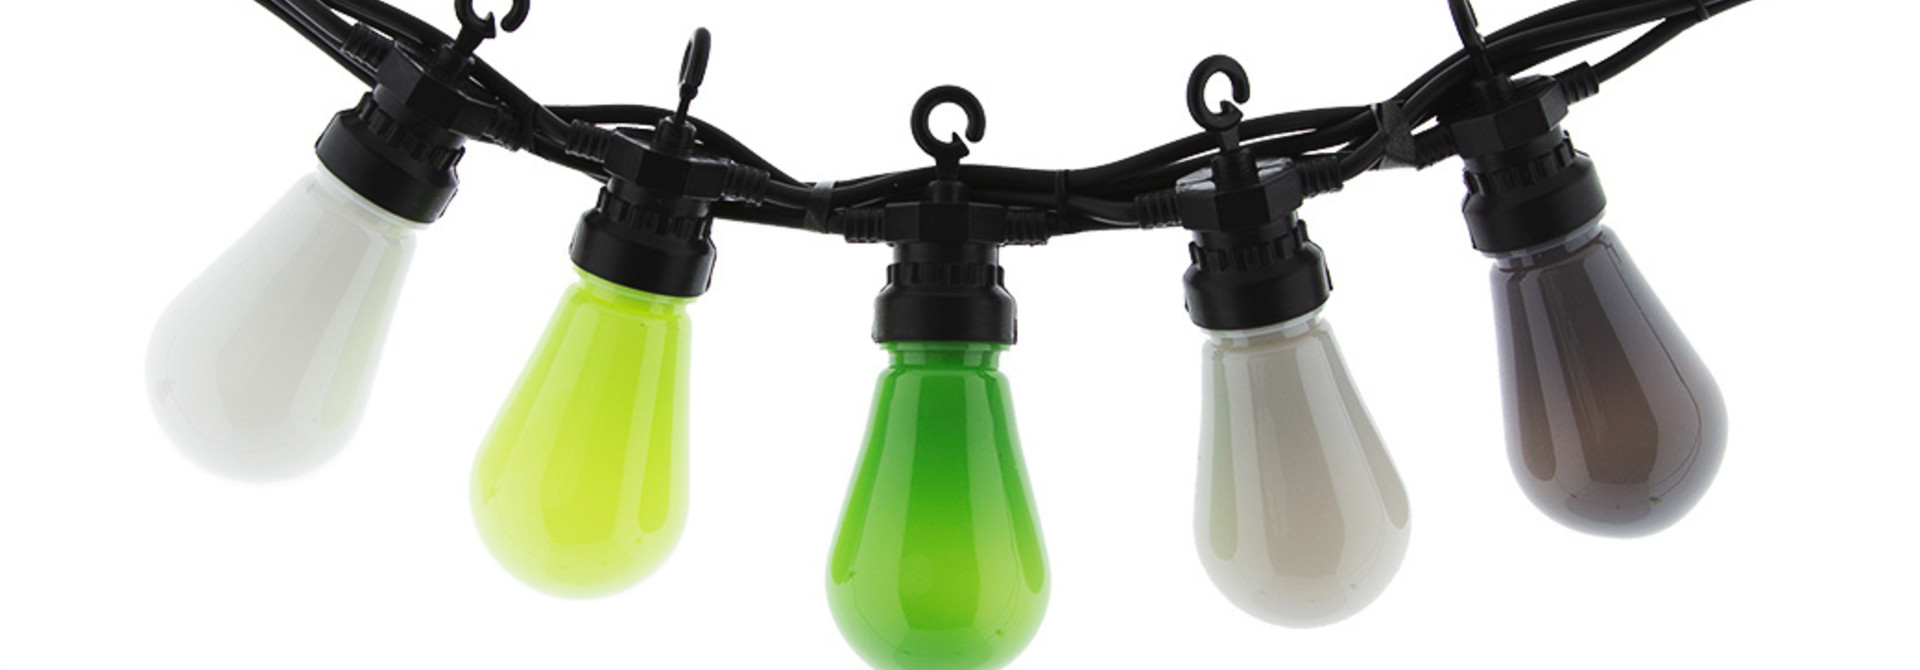 LEDR buiten feestverlichting groen - Outdoor Patio Lichtslinger Green Grey - 10 LED lampen - Edison Bulbs